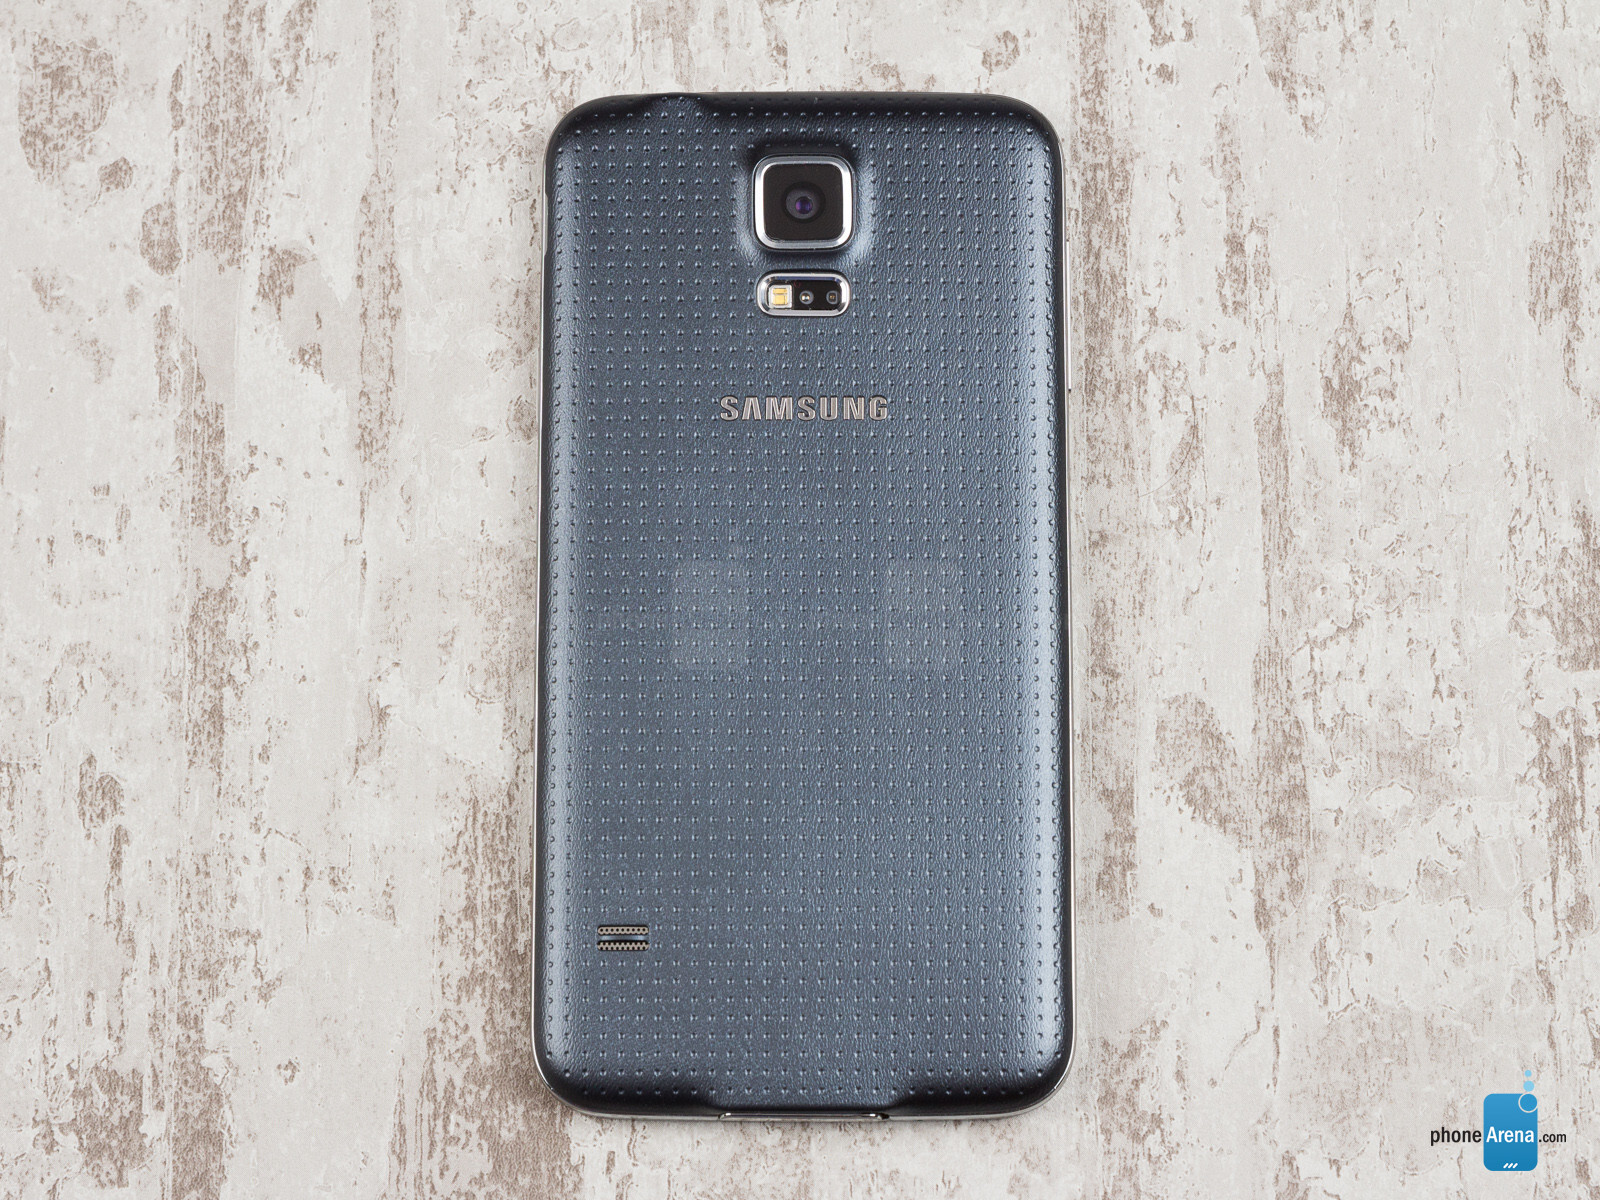 Samsung Galaxy S5 Review - Call quality, Battery and Conclusion